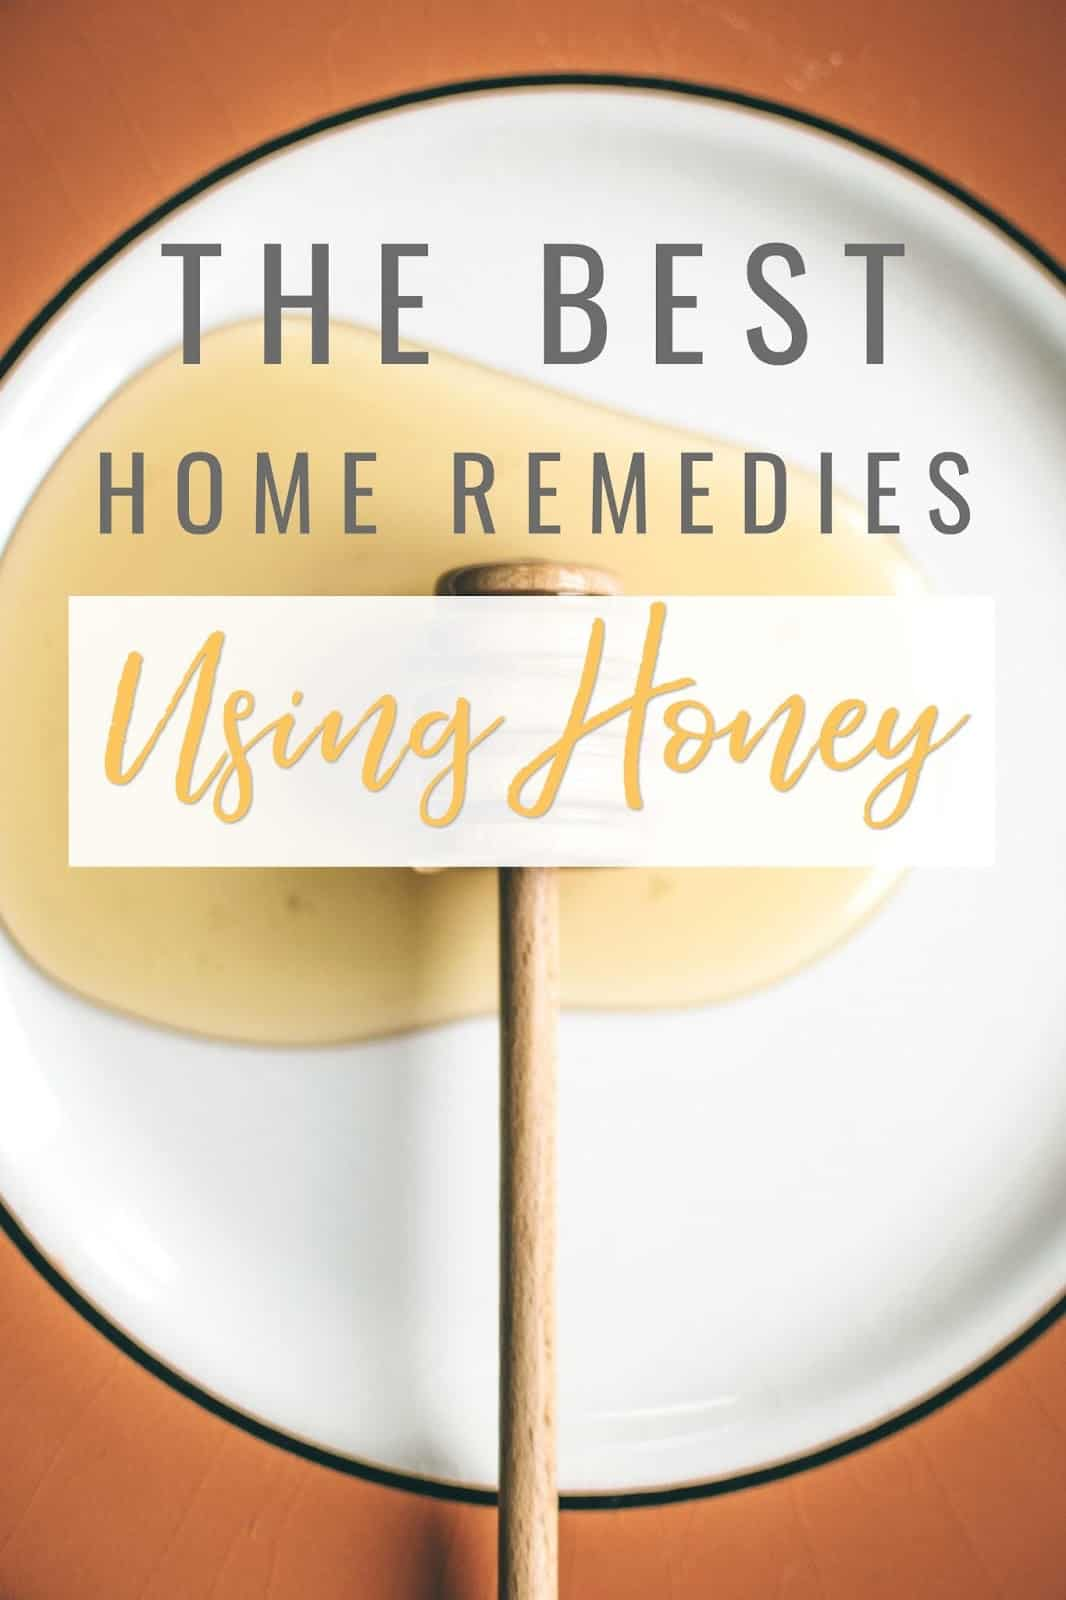 Honey health benefits. Benefits of raw honey. Home remedies using honey healing properties.